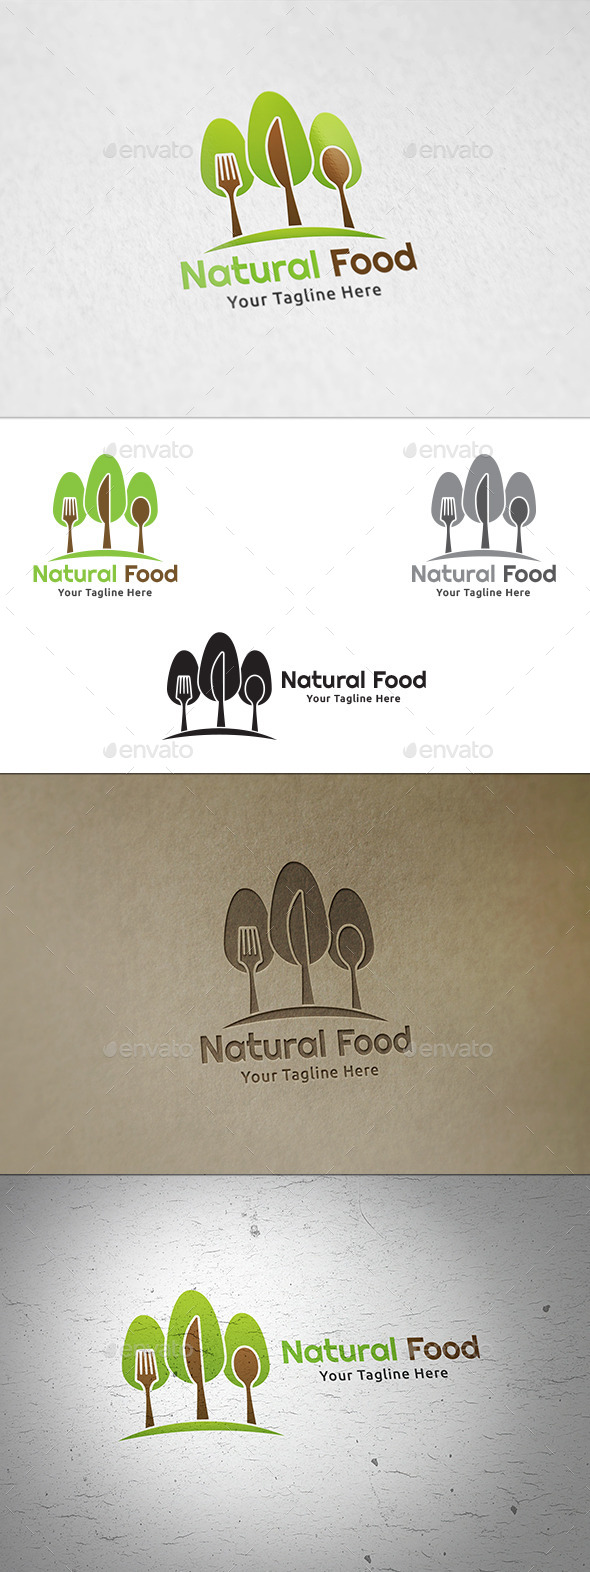 Natural Food - Logo Template